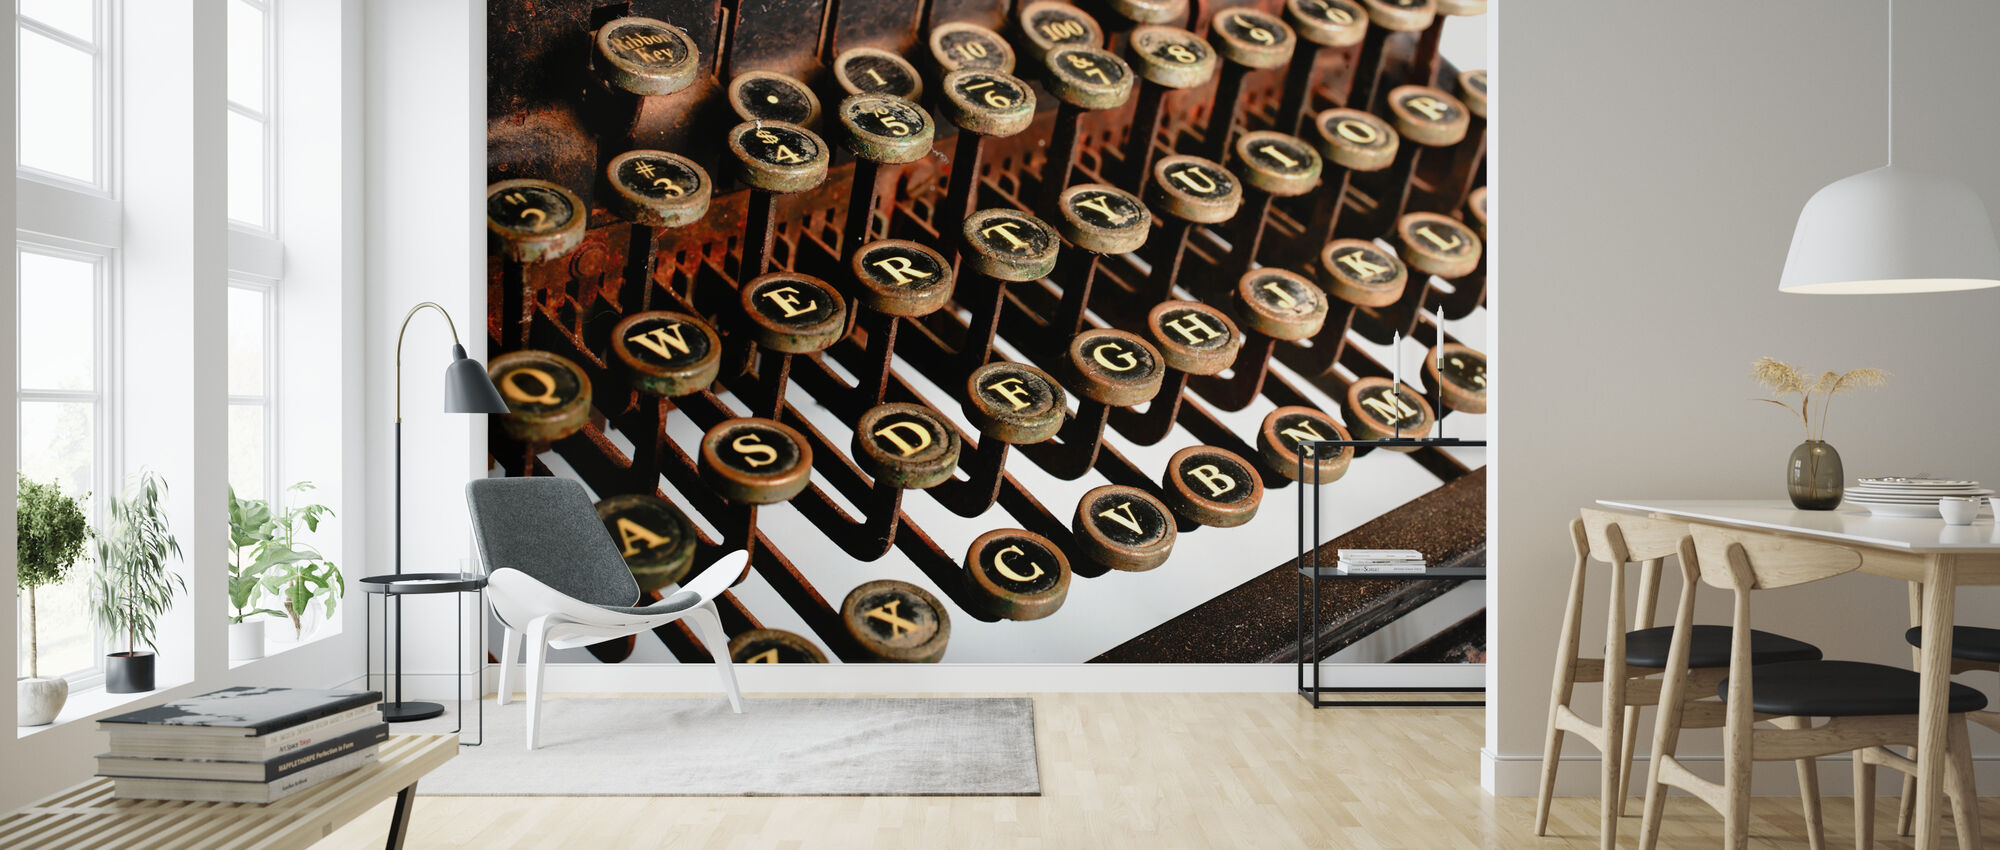 Vintage Typewriter - Wallpaper - Living Room